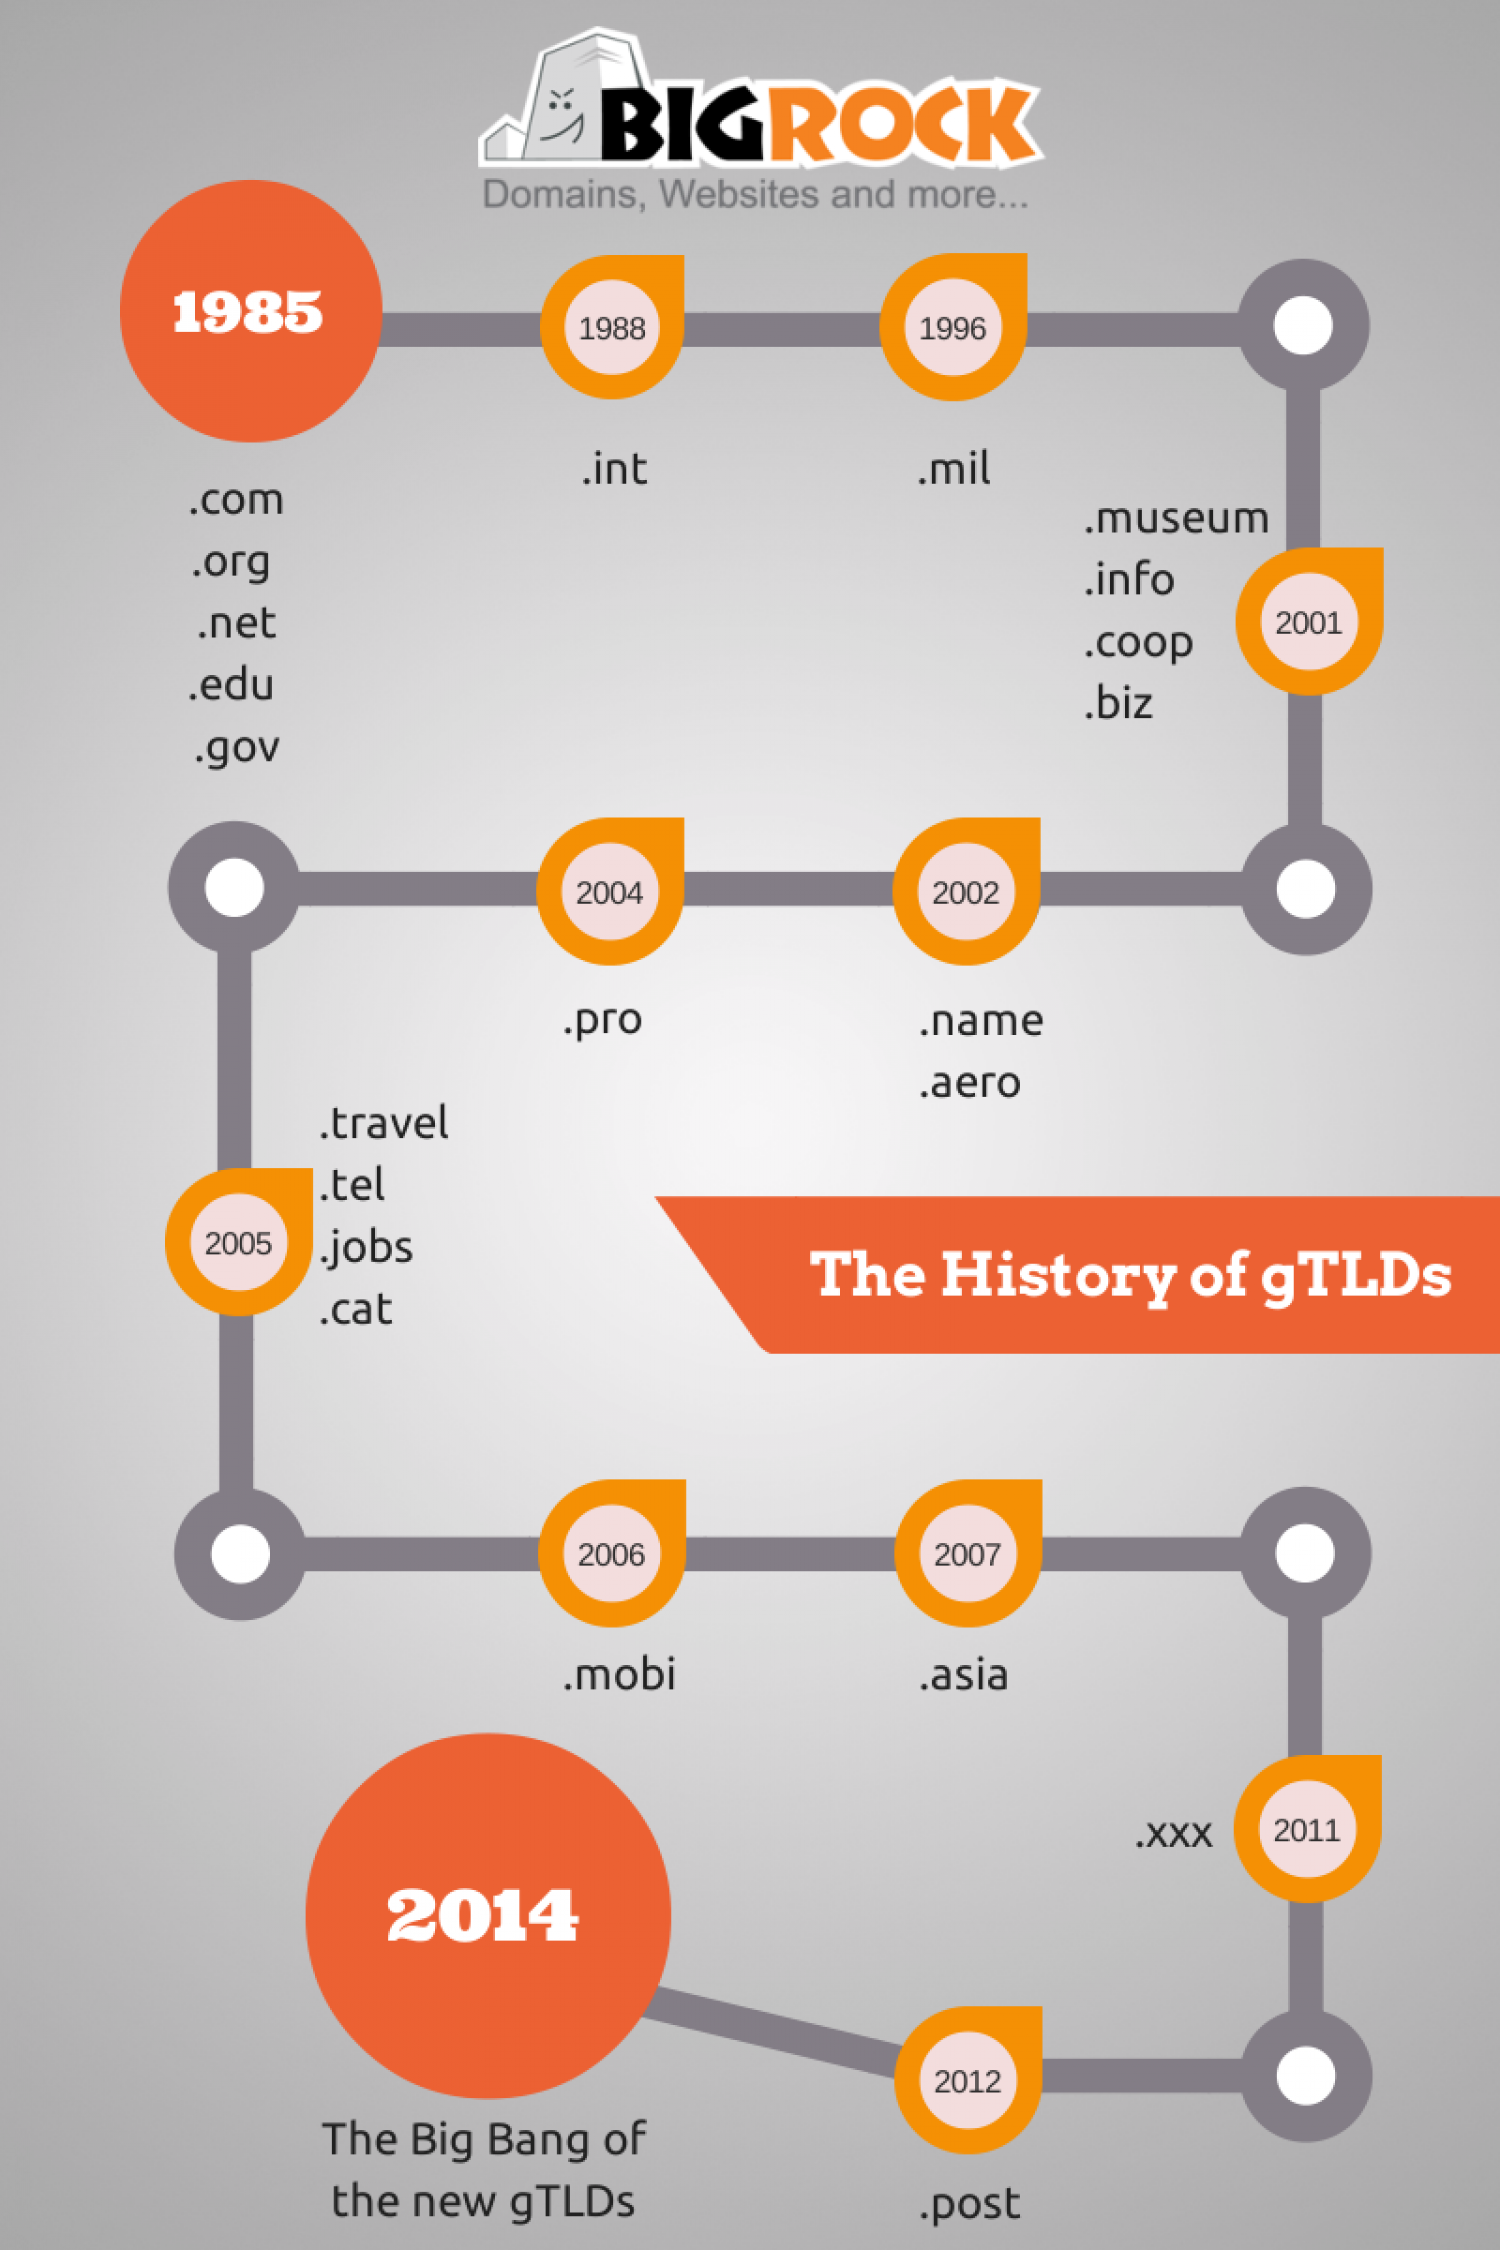 History of gTLDs Infographic